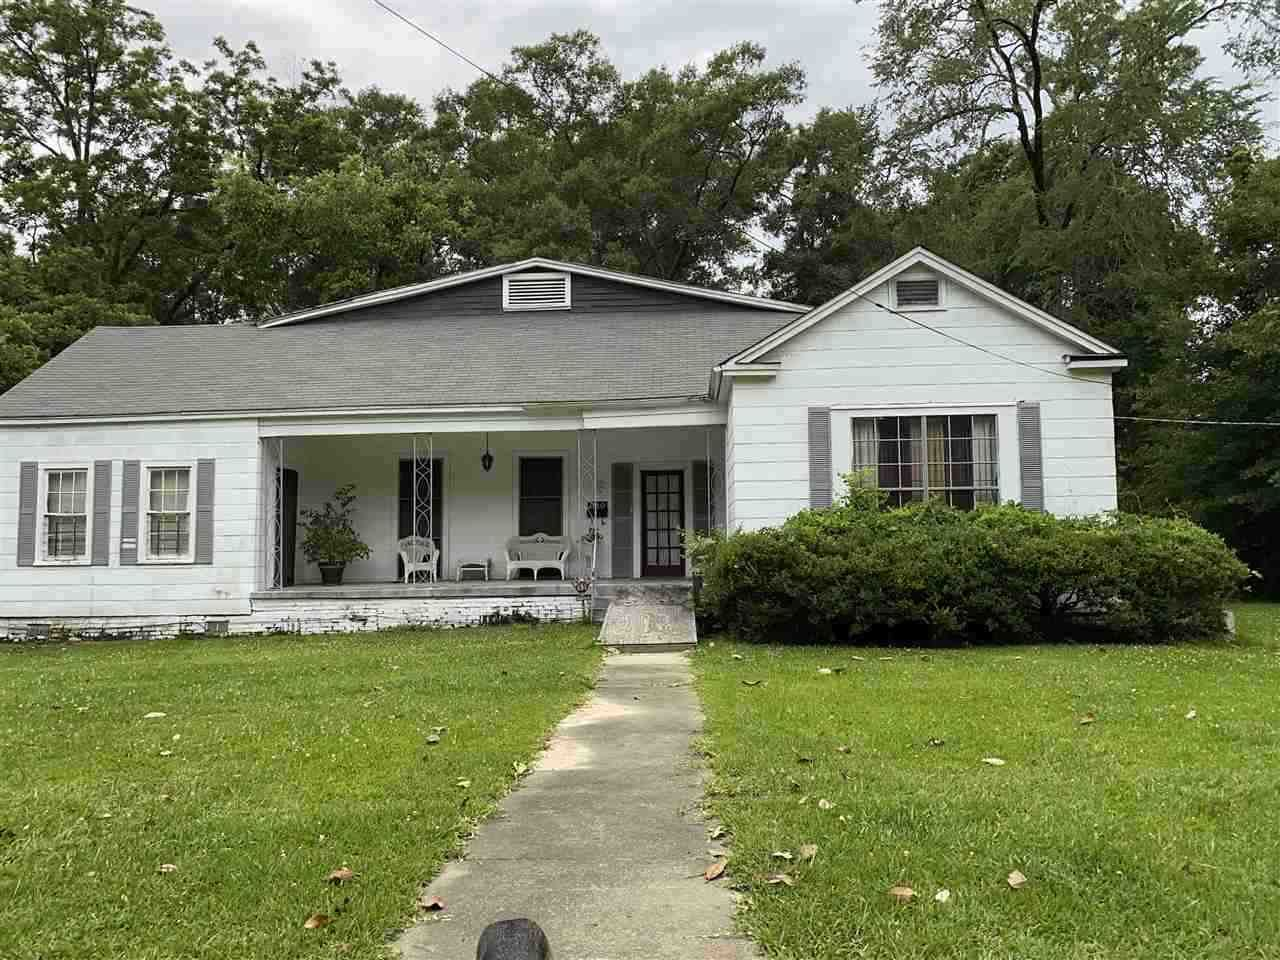 340 South Extension St, Hazlehurst, MS 39083 - MLS#: 335377